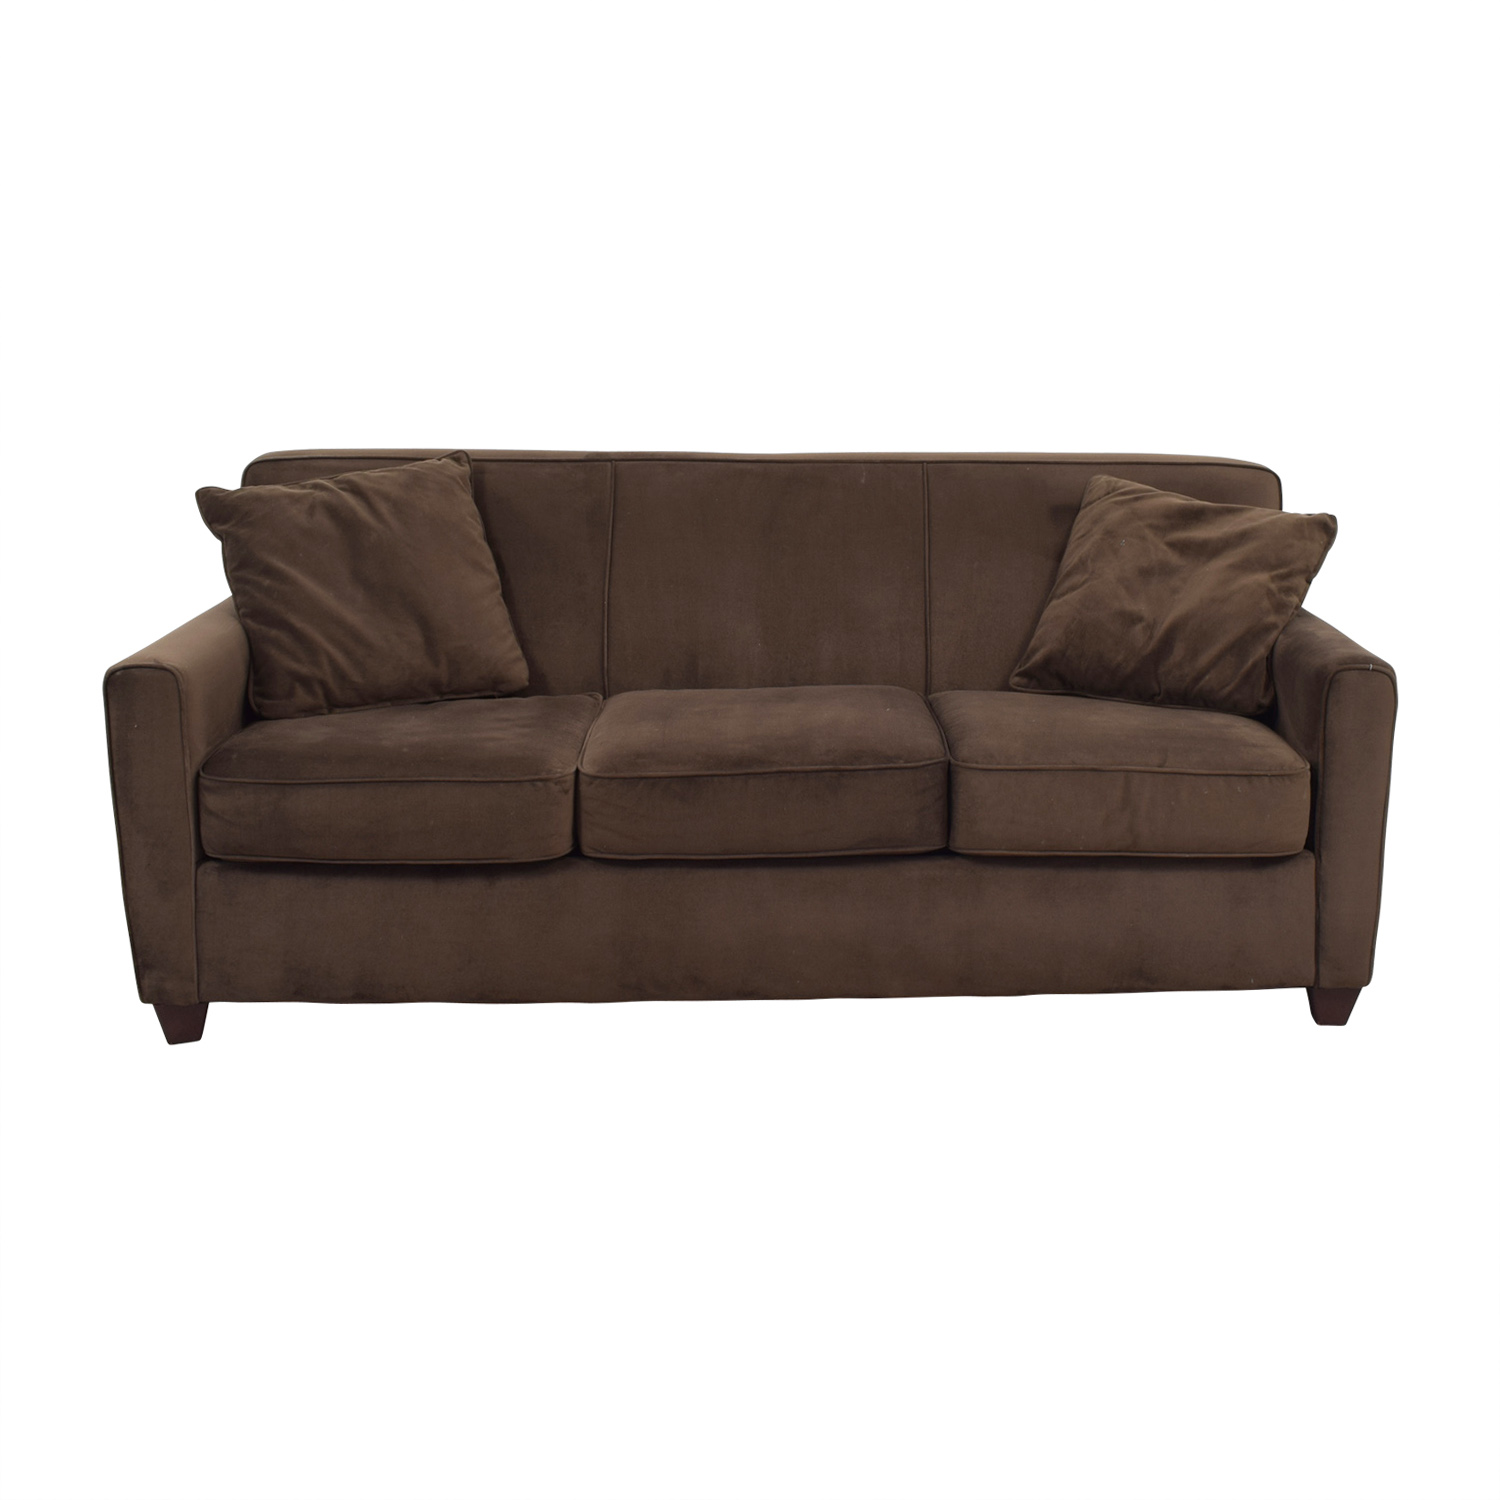 Delicieux Brown Microfiber Three Cushion Sofa Classic Sofas ...